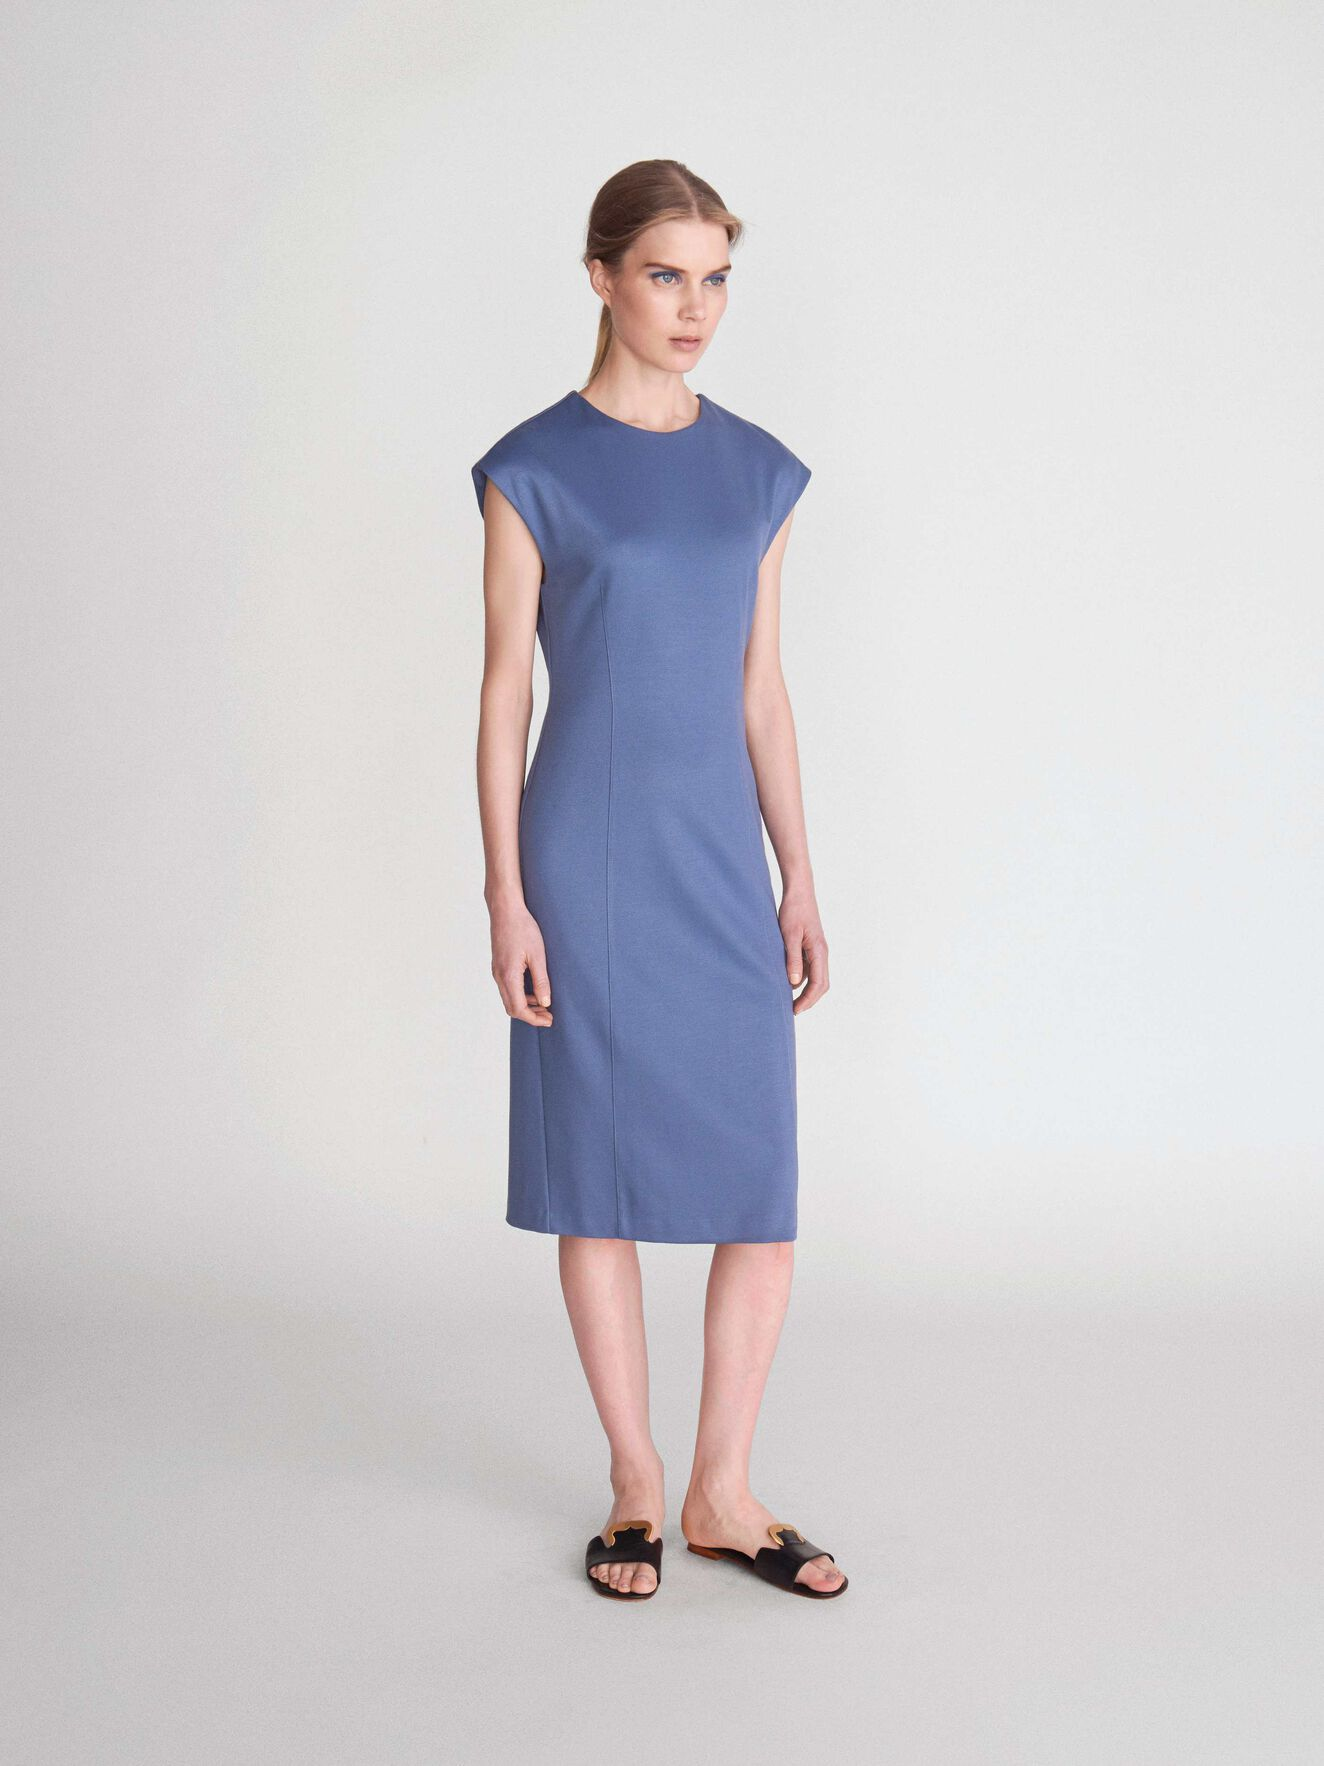 Cady 2S Kleid in Soft blue from Tiger of Sweden